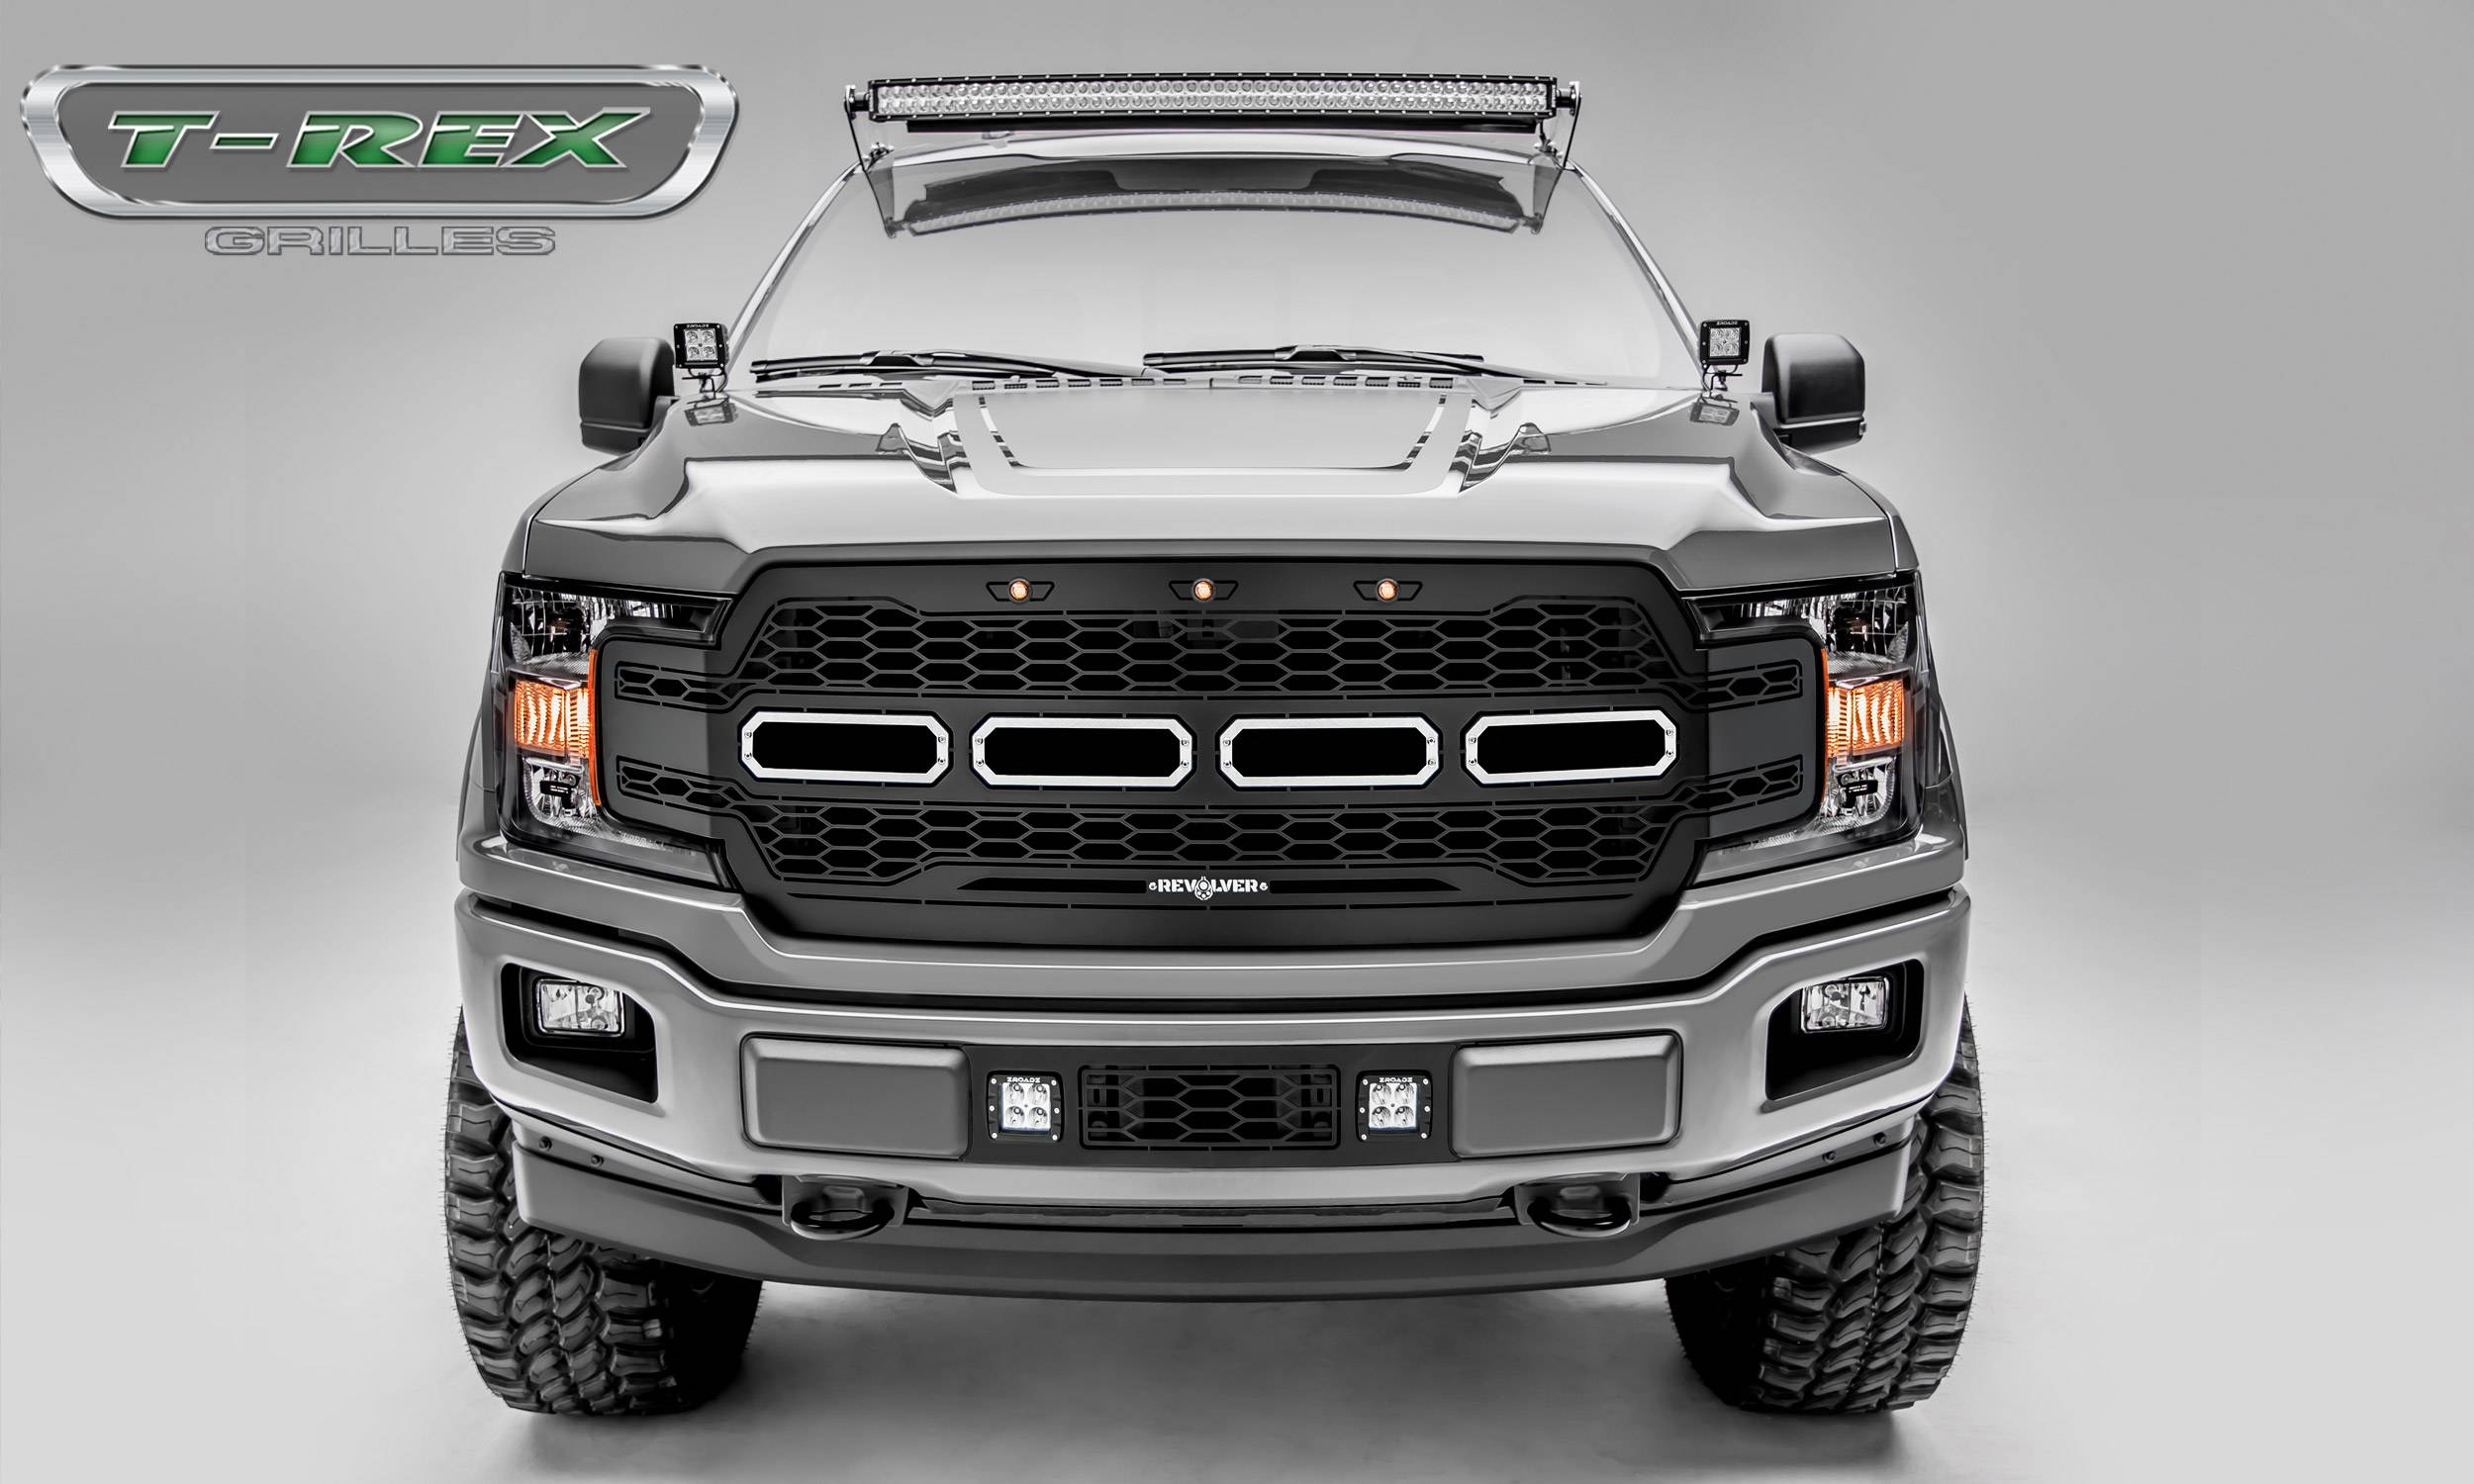 T-REX Ford F-150 - Revolver Series - Main Grille Replacement w/ no LEDs - Laser Cut Steel Pattern - Black Powdercoat Finish - Pt # 6515851